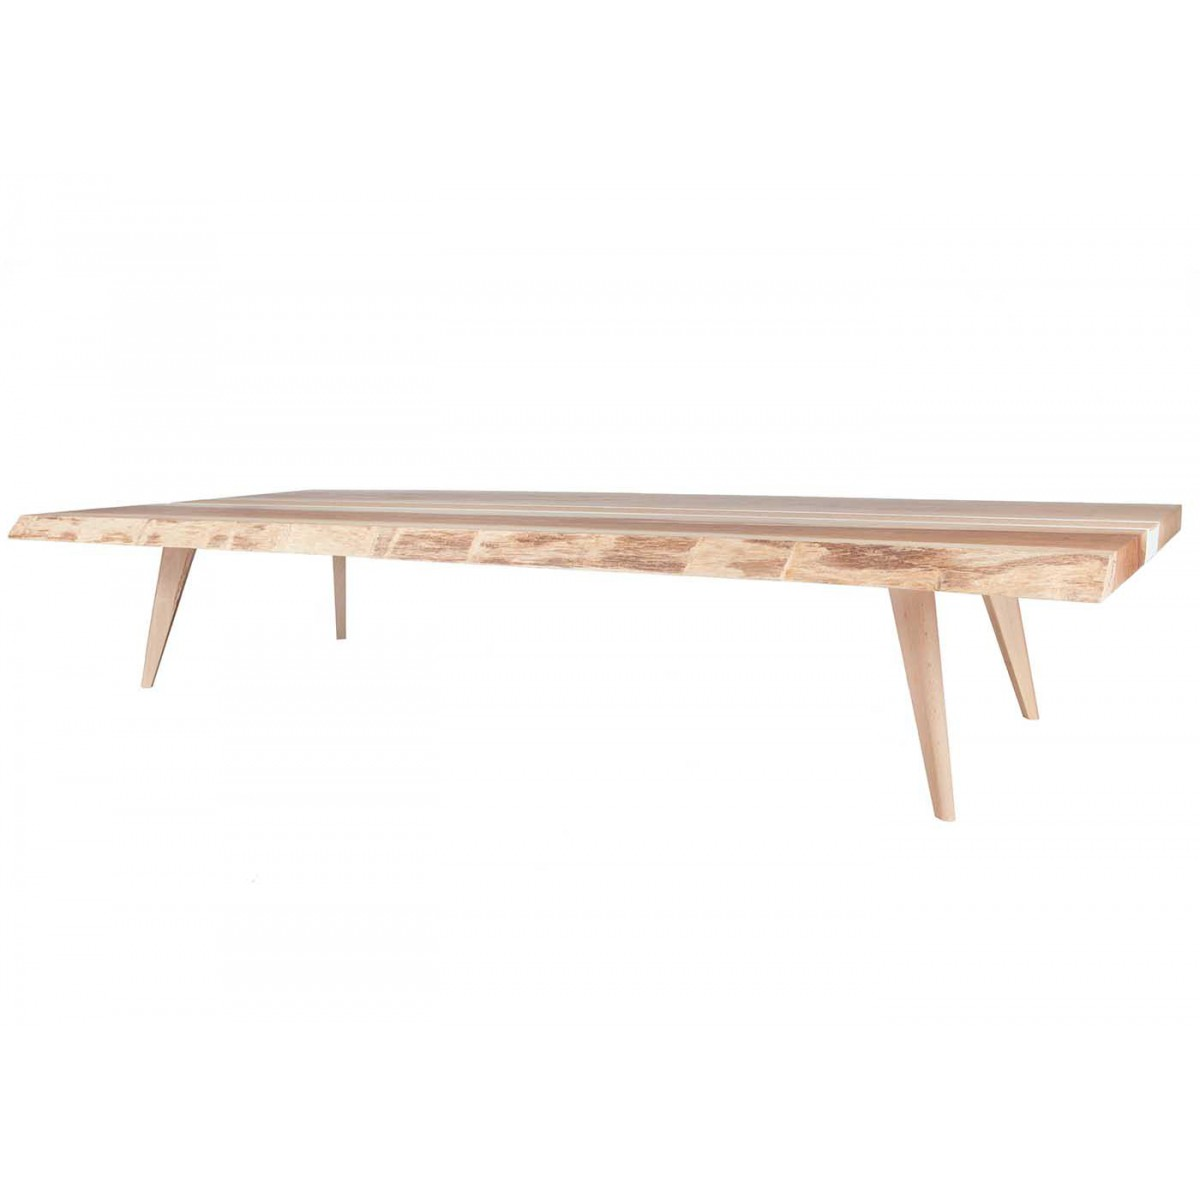 Table basse design scandinave en ch ne massif tray blomkal - Table salon modulable hauteur ...